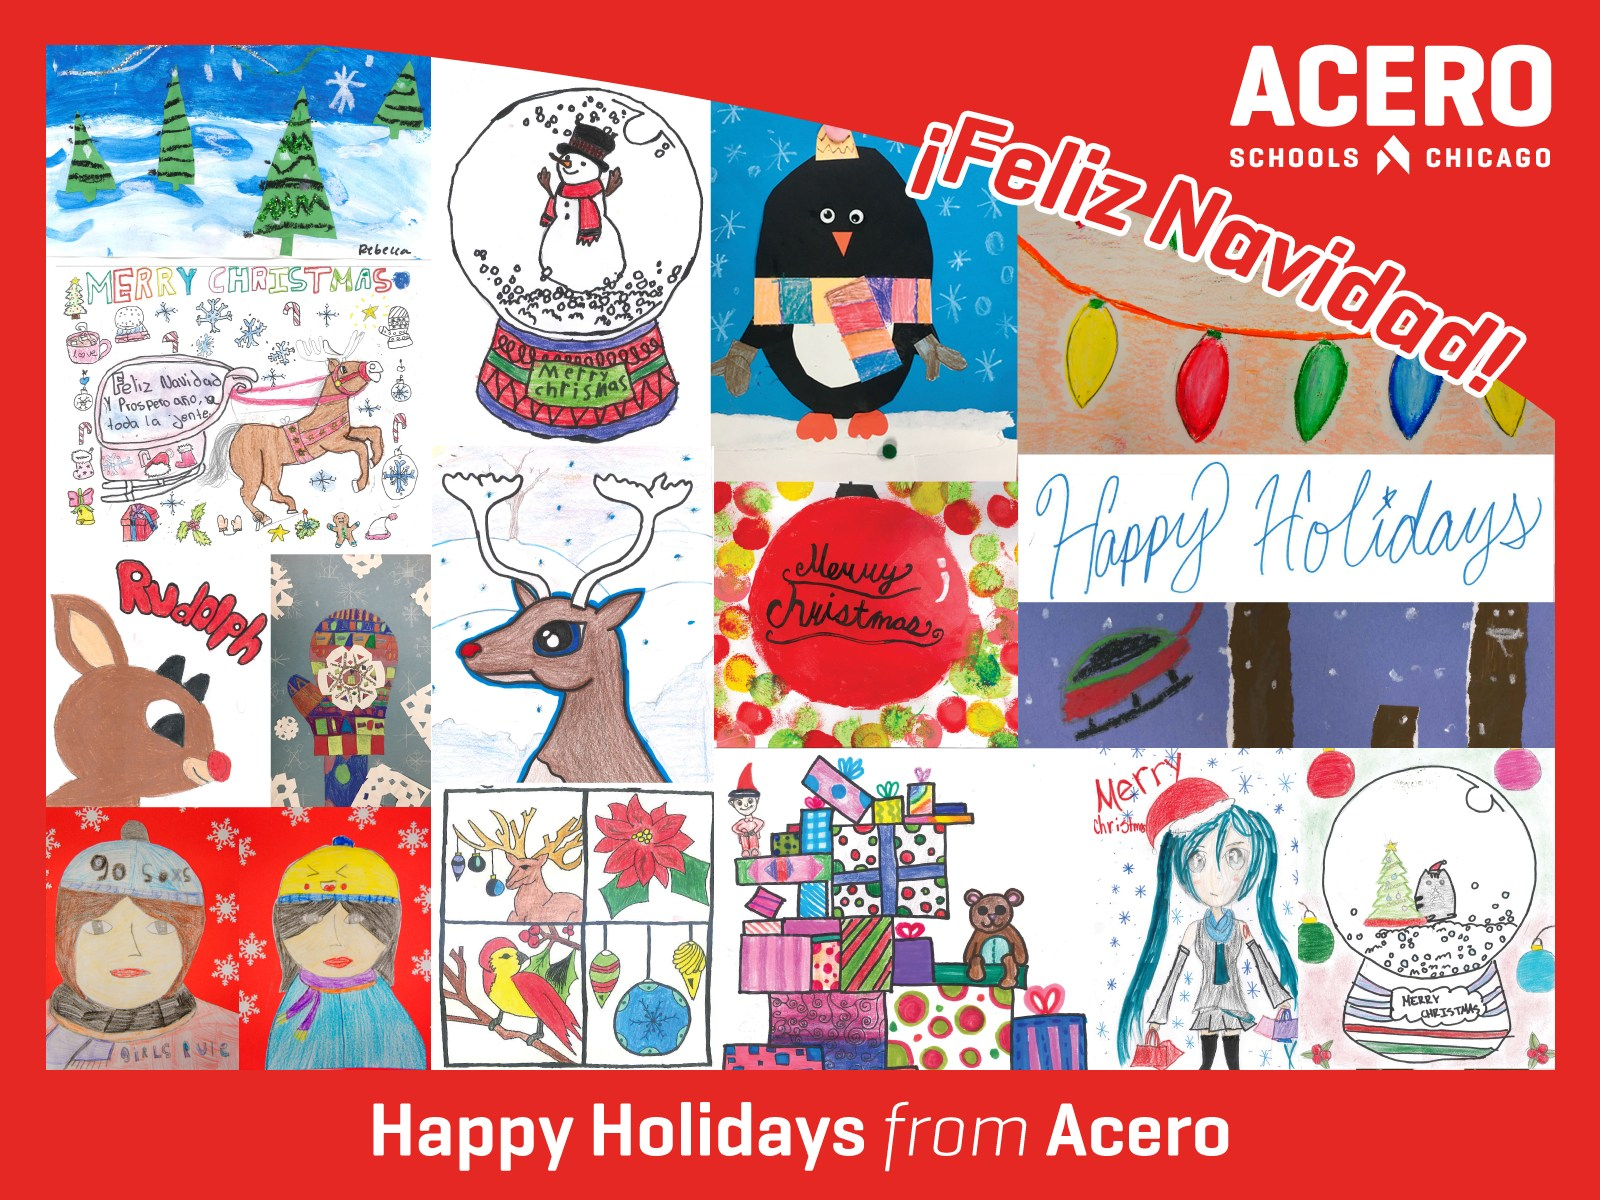 Collage of holiday artwork created by Acero students